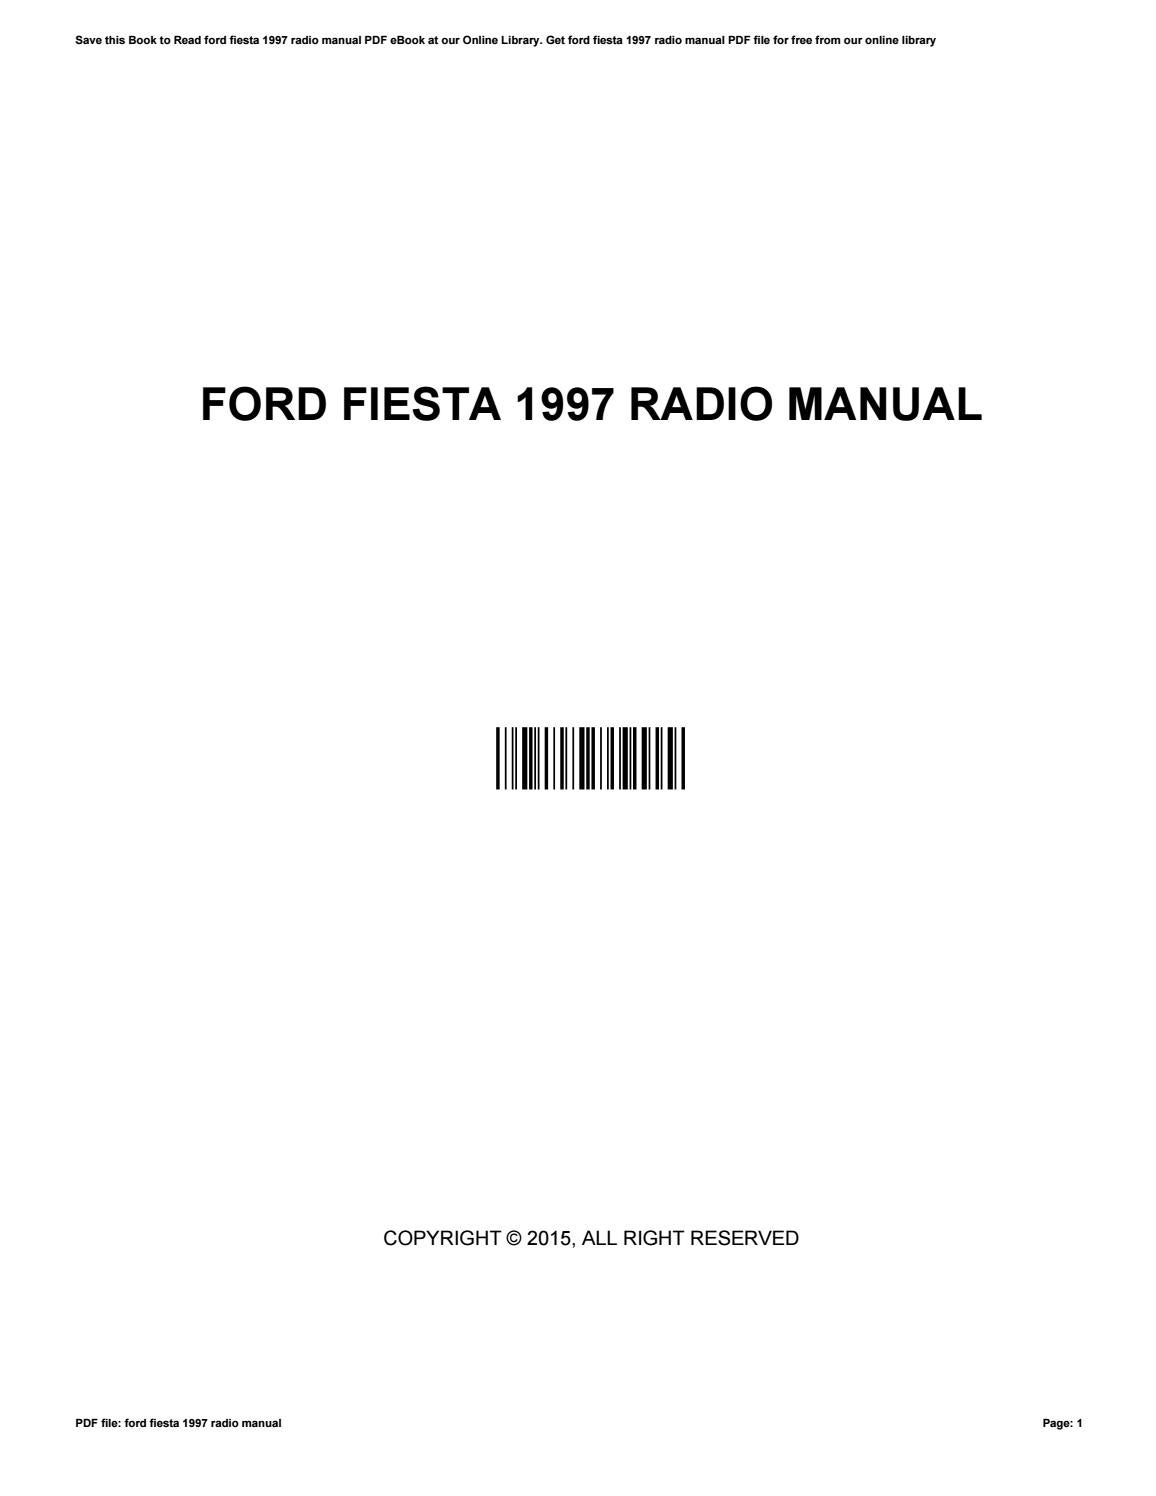 2015 radio manual ebook rh 2015 radio manual ebook ecoflow us